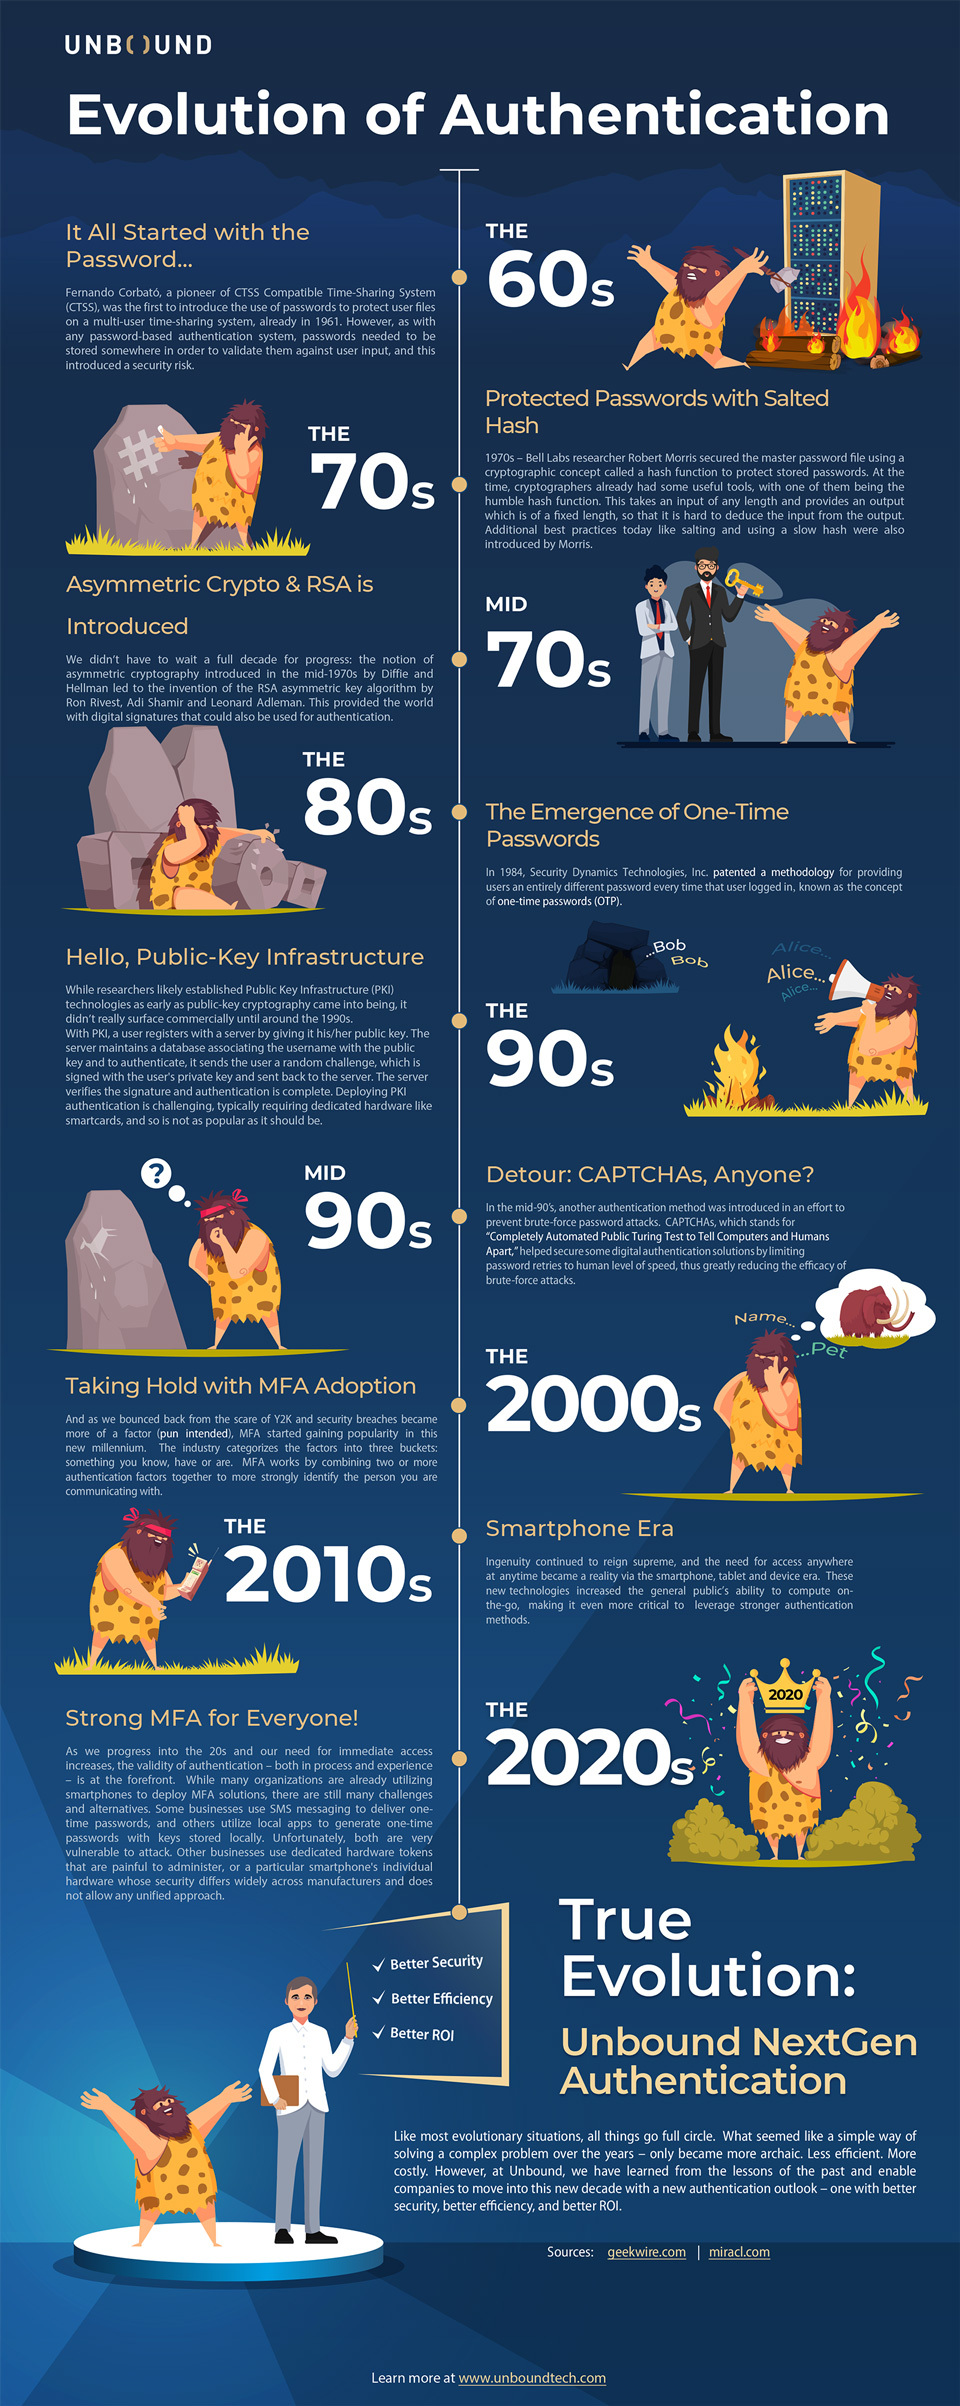 History of Authentication